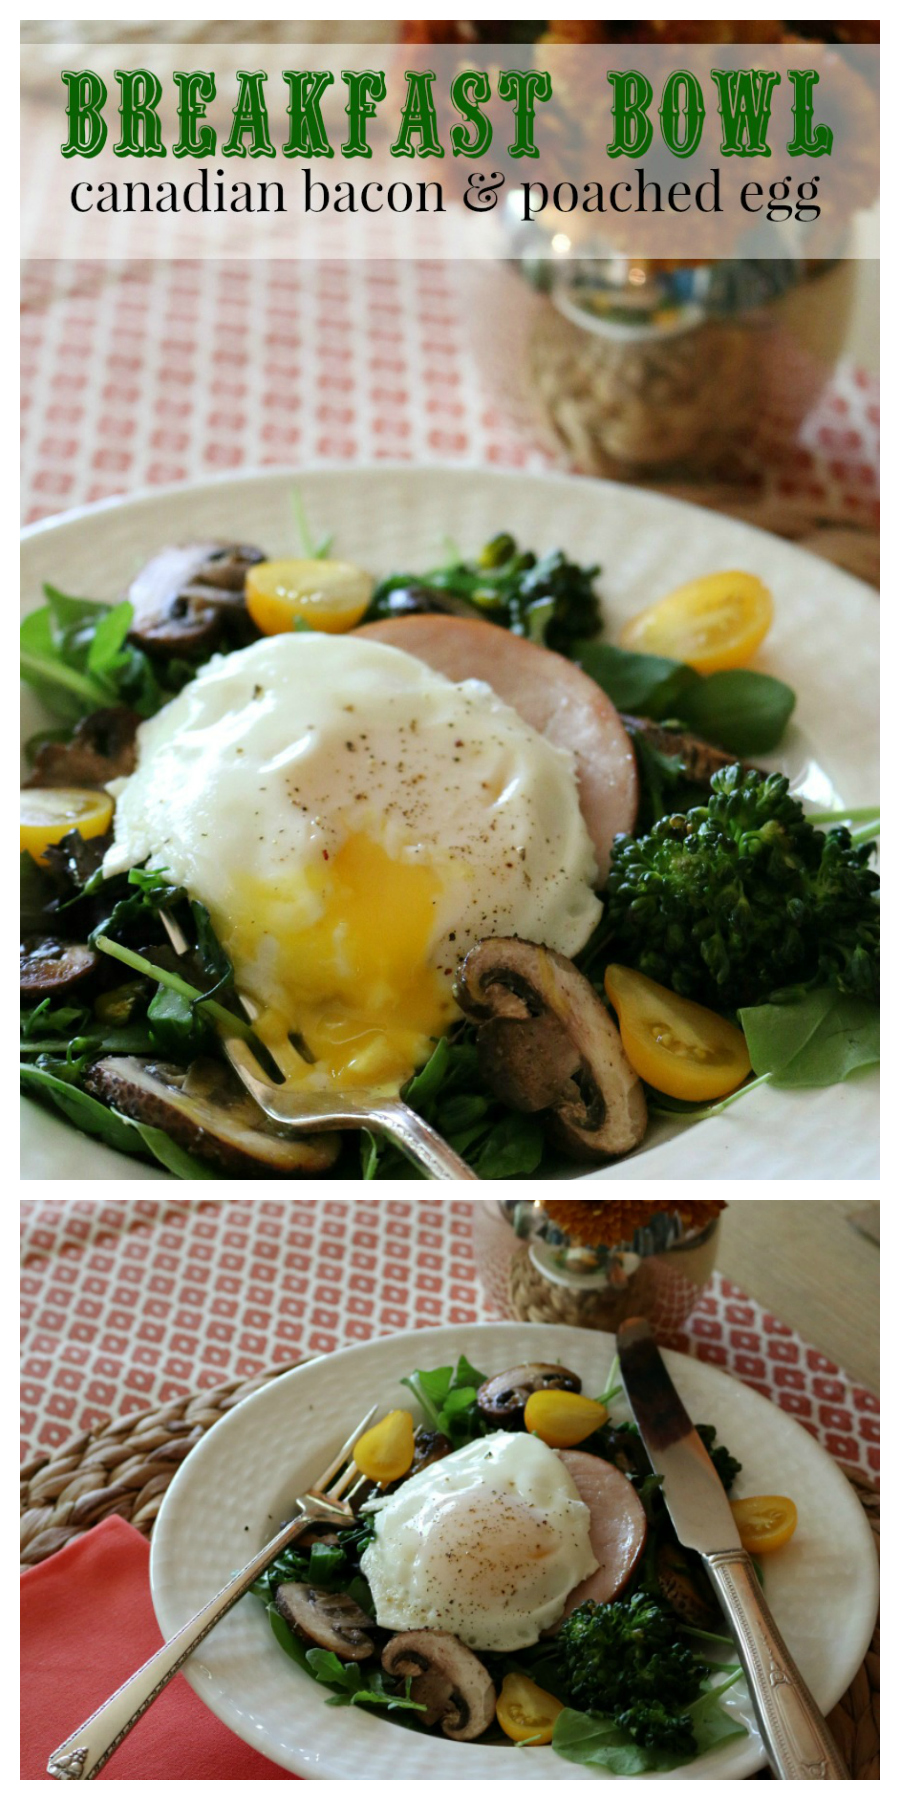 Breakfast Bowl with Canadian Bacon and topped with a Poached Egg CeceliasGoodStuff.com | Good Food for Good People